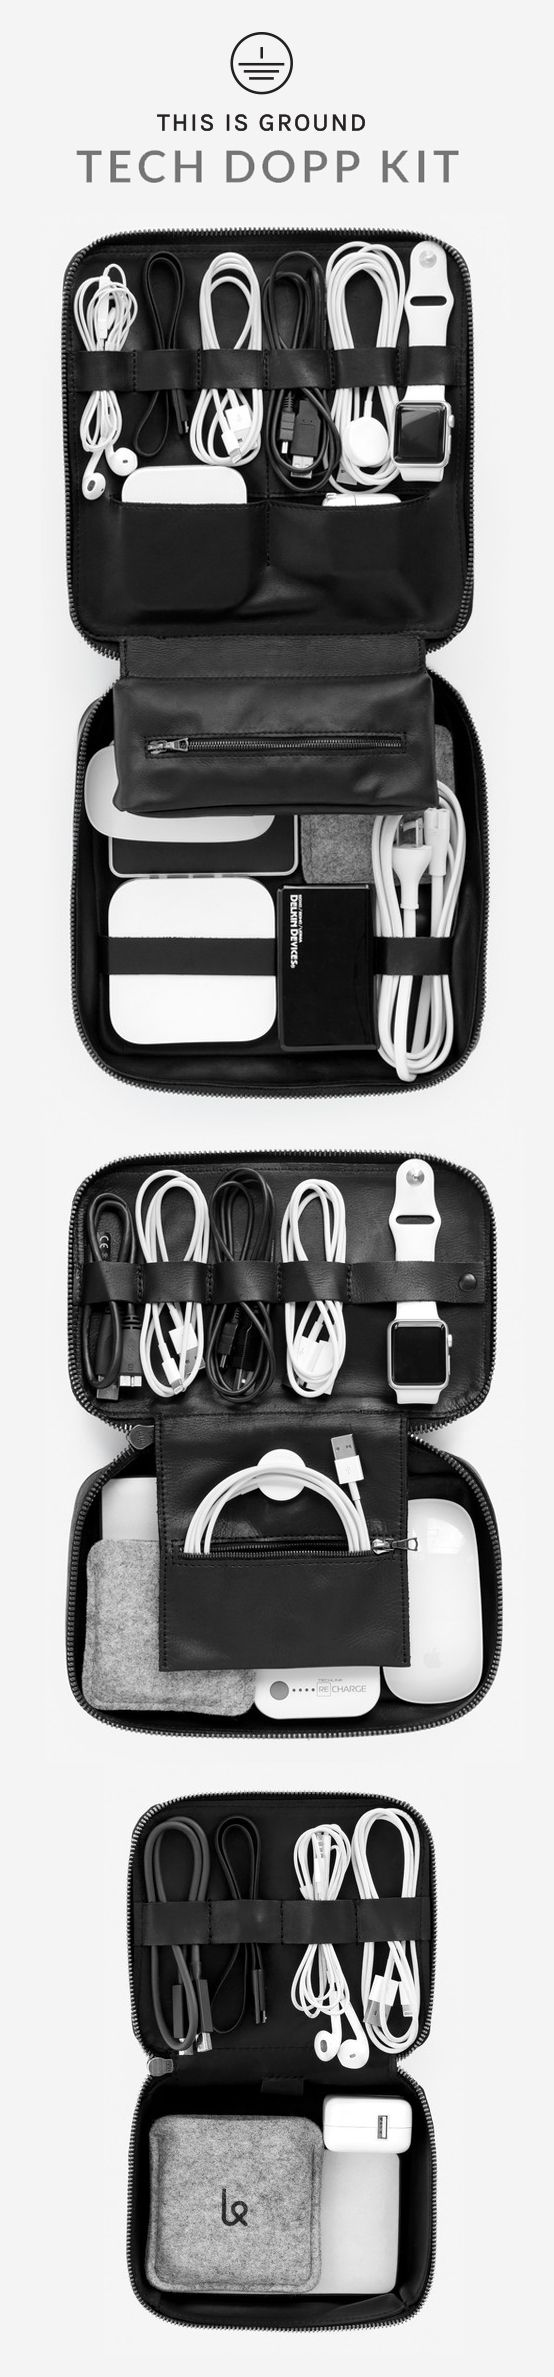 Zip Up Headphones Tech Dopp Kit Organizer Case Charcoal Dopp Kit Headphones And Cord